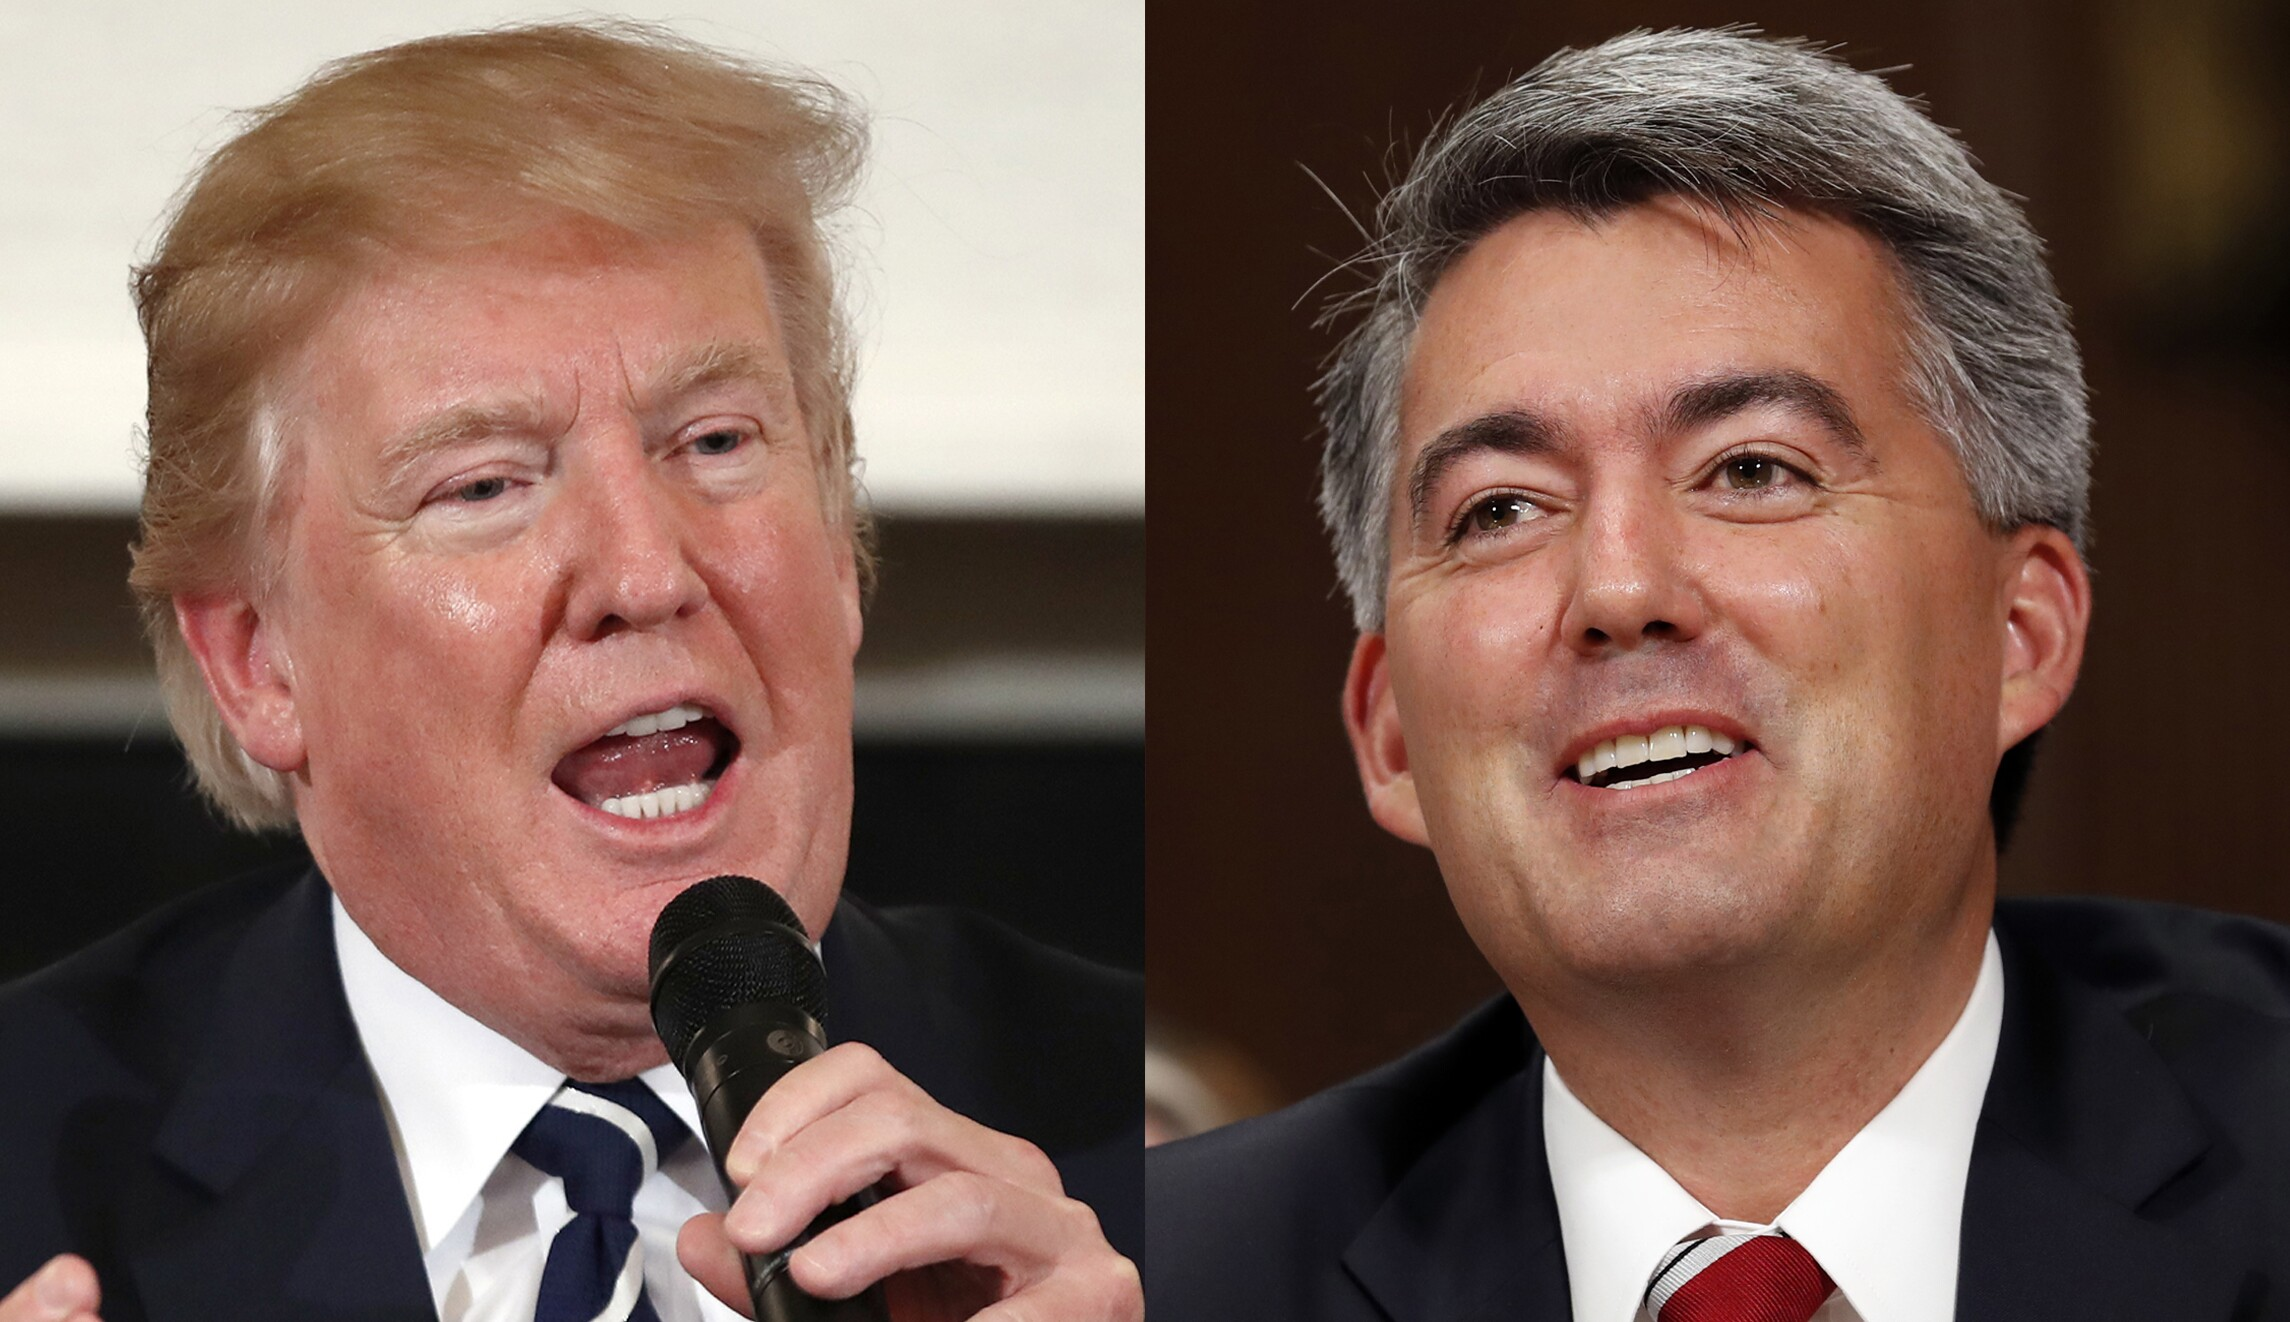 https://www.washingtonexaminer.com/opinion/he-fights-cory-gardner-tells-gop-candidates-to-embrace-trumps-pugnacity